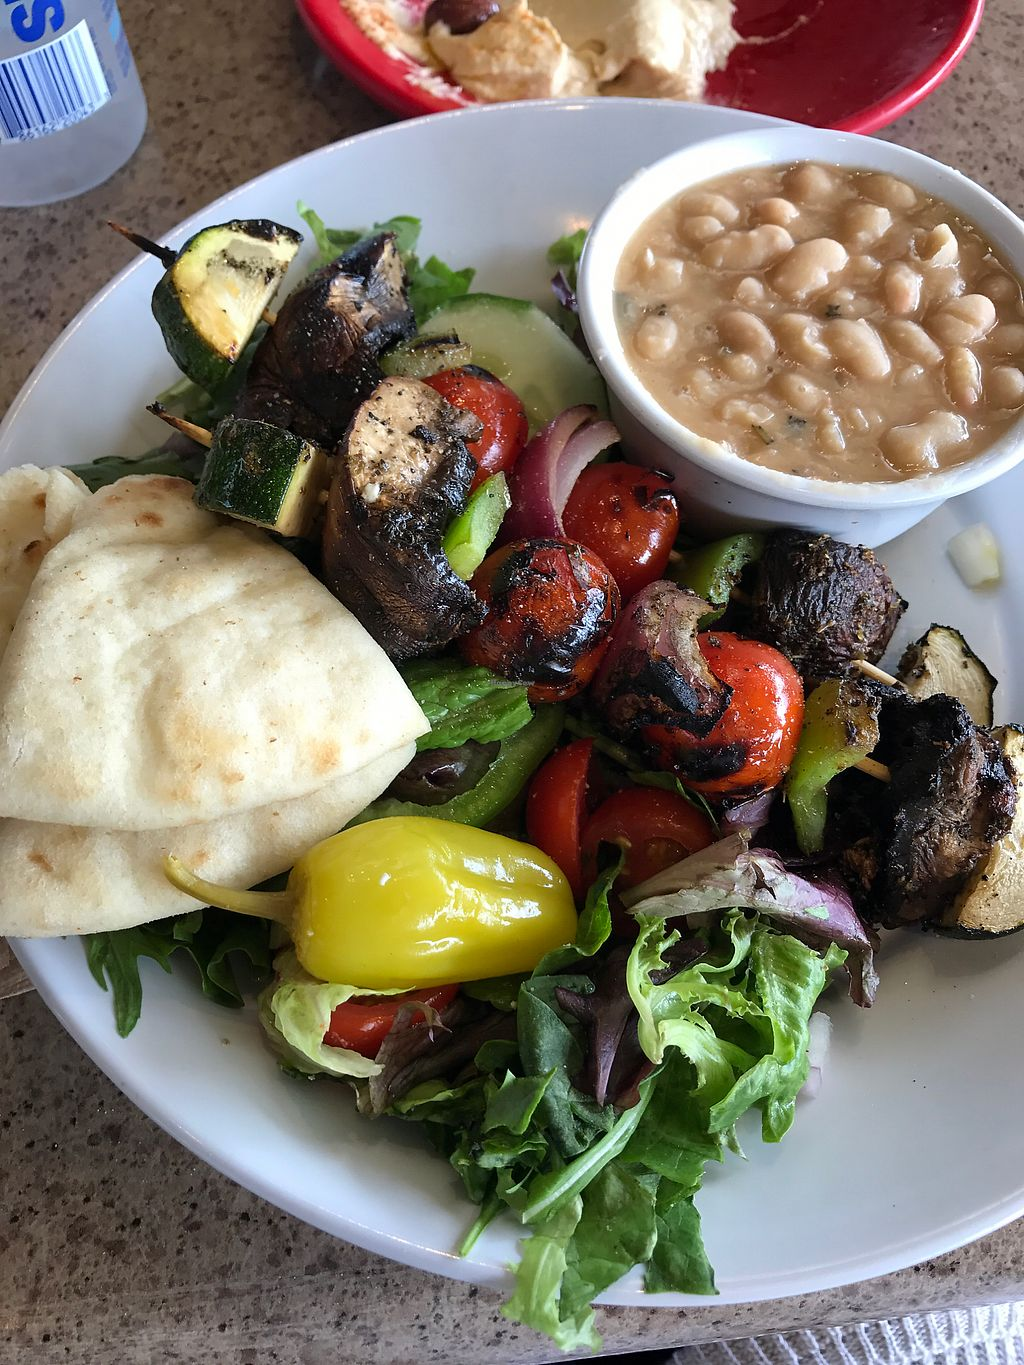 """Photo of Zoe's Kitchen  by <a href=""""/members/profile/KerryElise"""">KerryElise</a> <br/>veggie kabobs with braised white beans and salad <br/> September 1, 2017  - <a href='/contact/abuse/image/47572/299743'>Report</a>"""